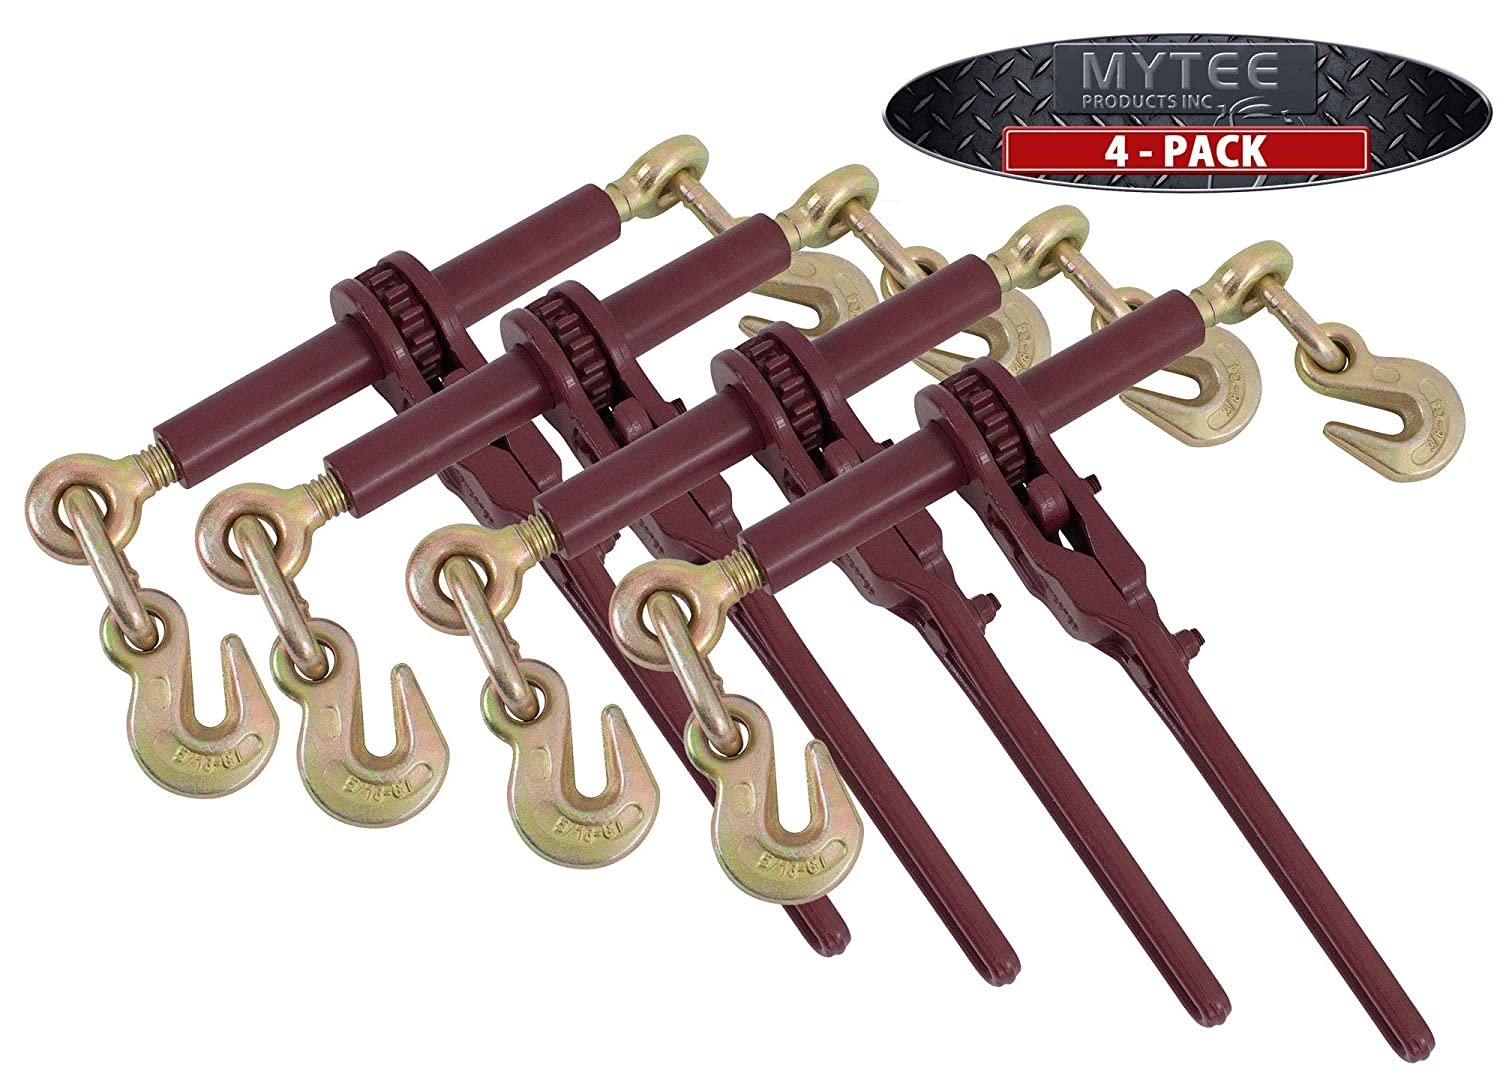 Mytee Products 4 Pack 5//16-3//8 Tow Chain Ratchet Load Binder Extreme 7100WLL Flatbed Transport Hauling